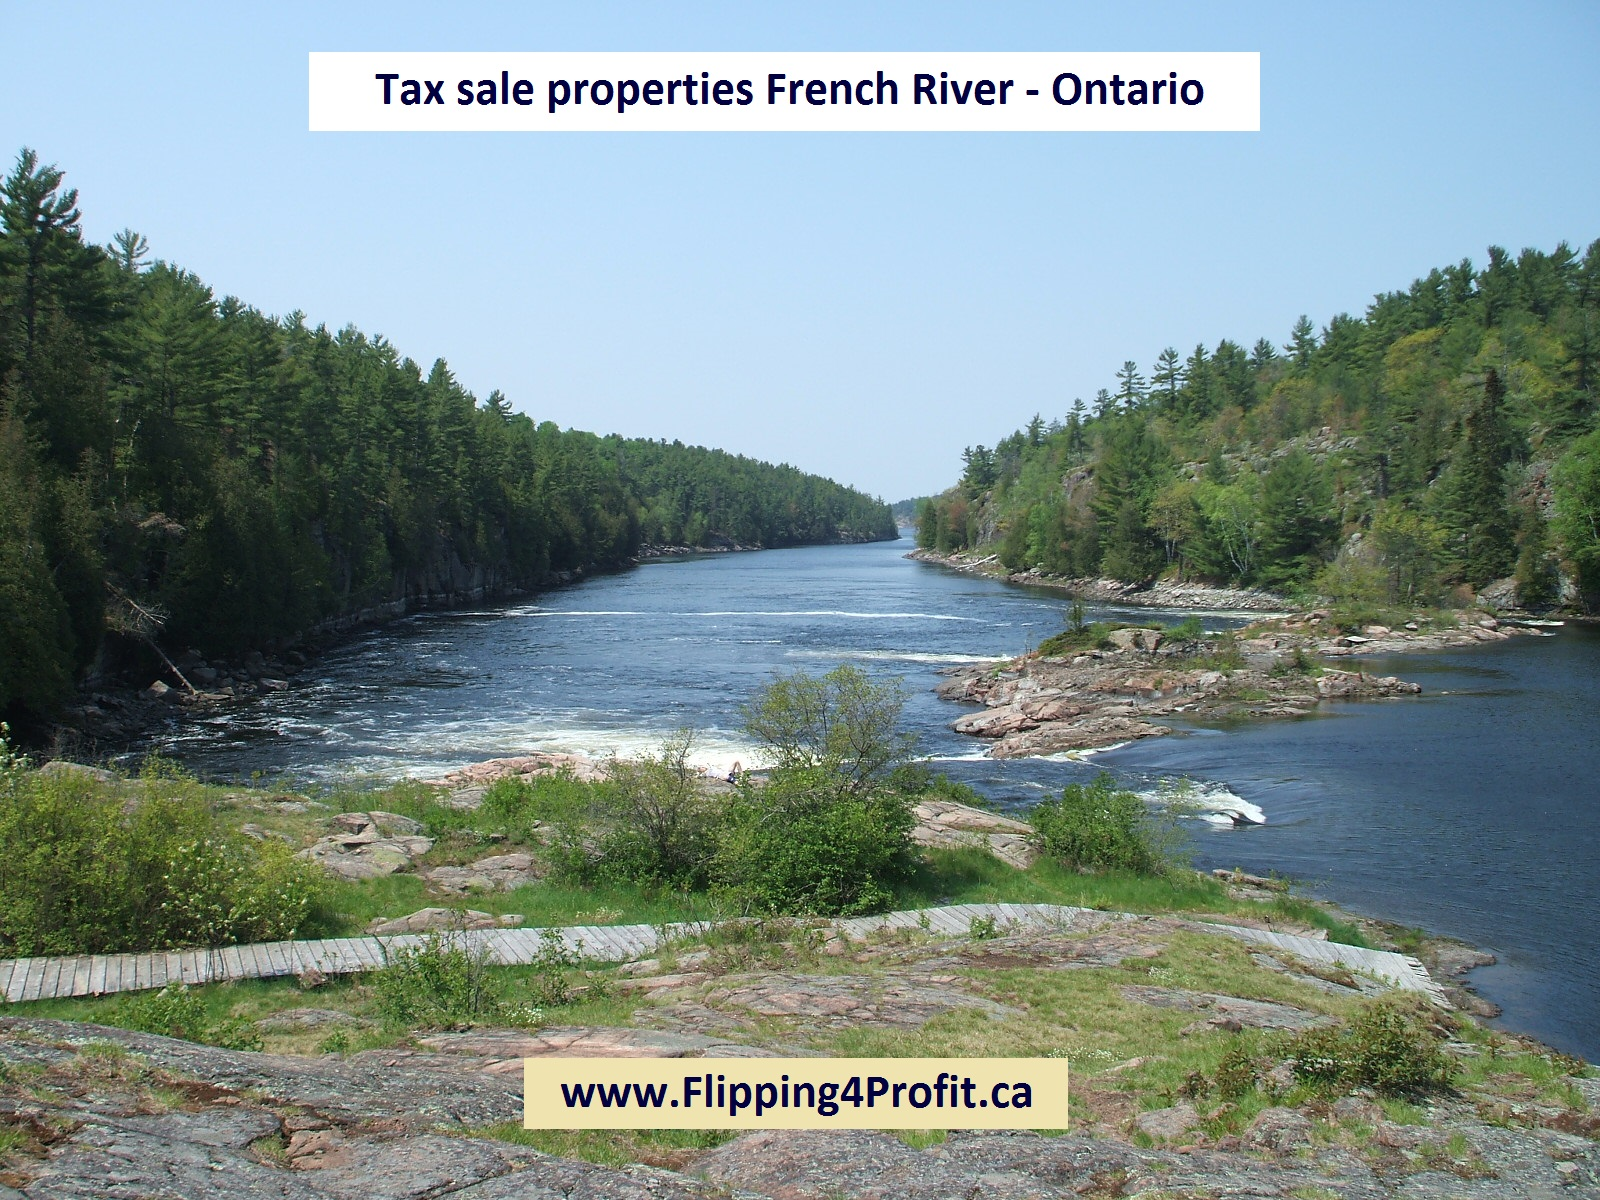 Tax sale properties French River - Ontario